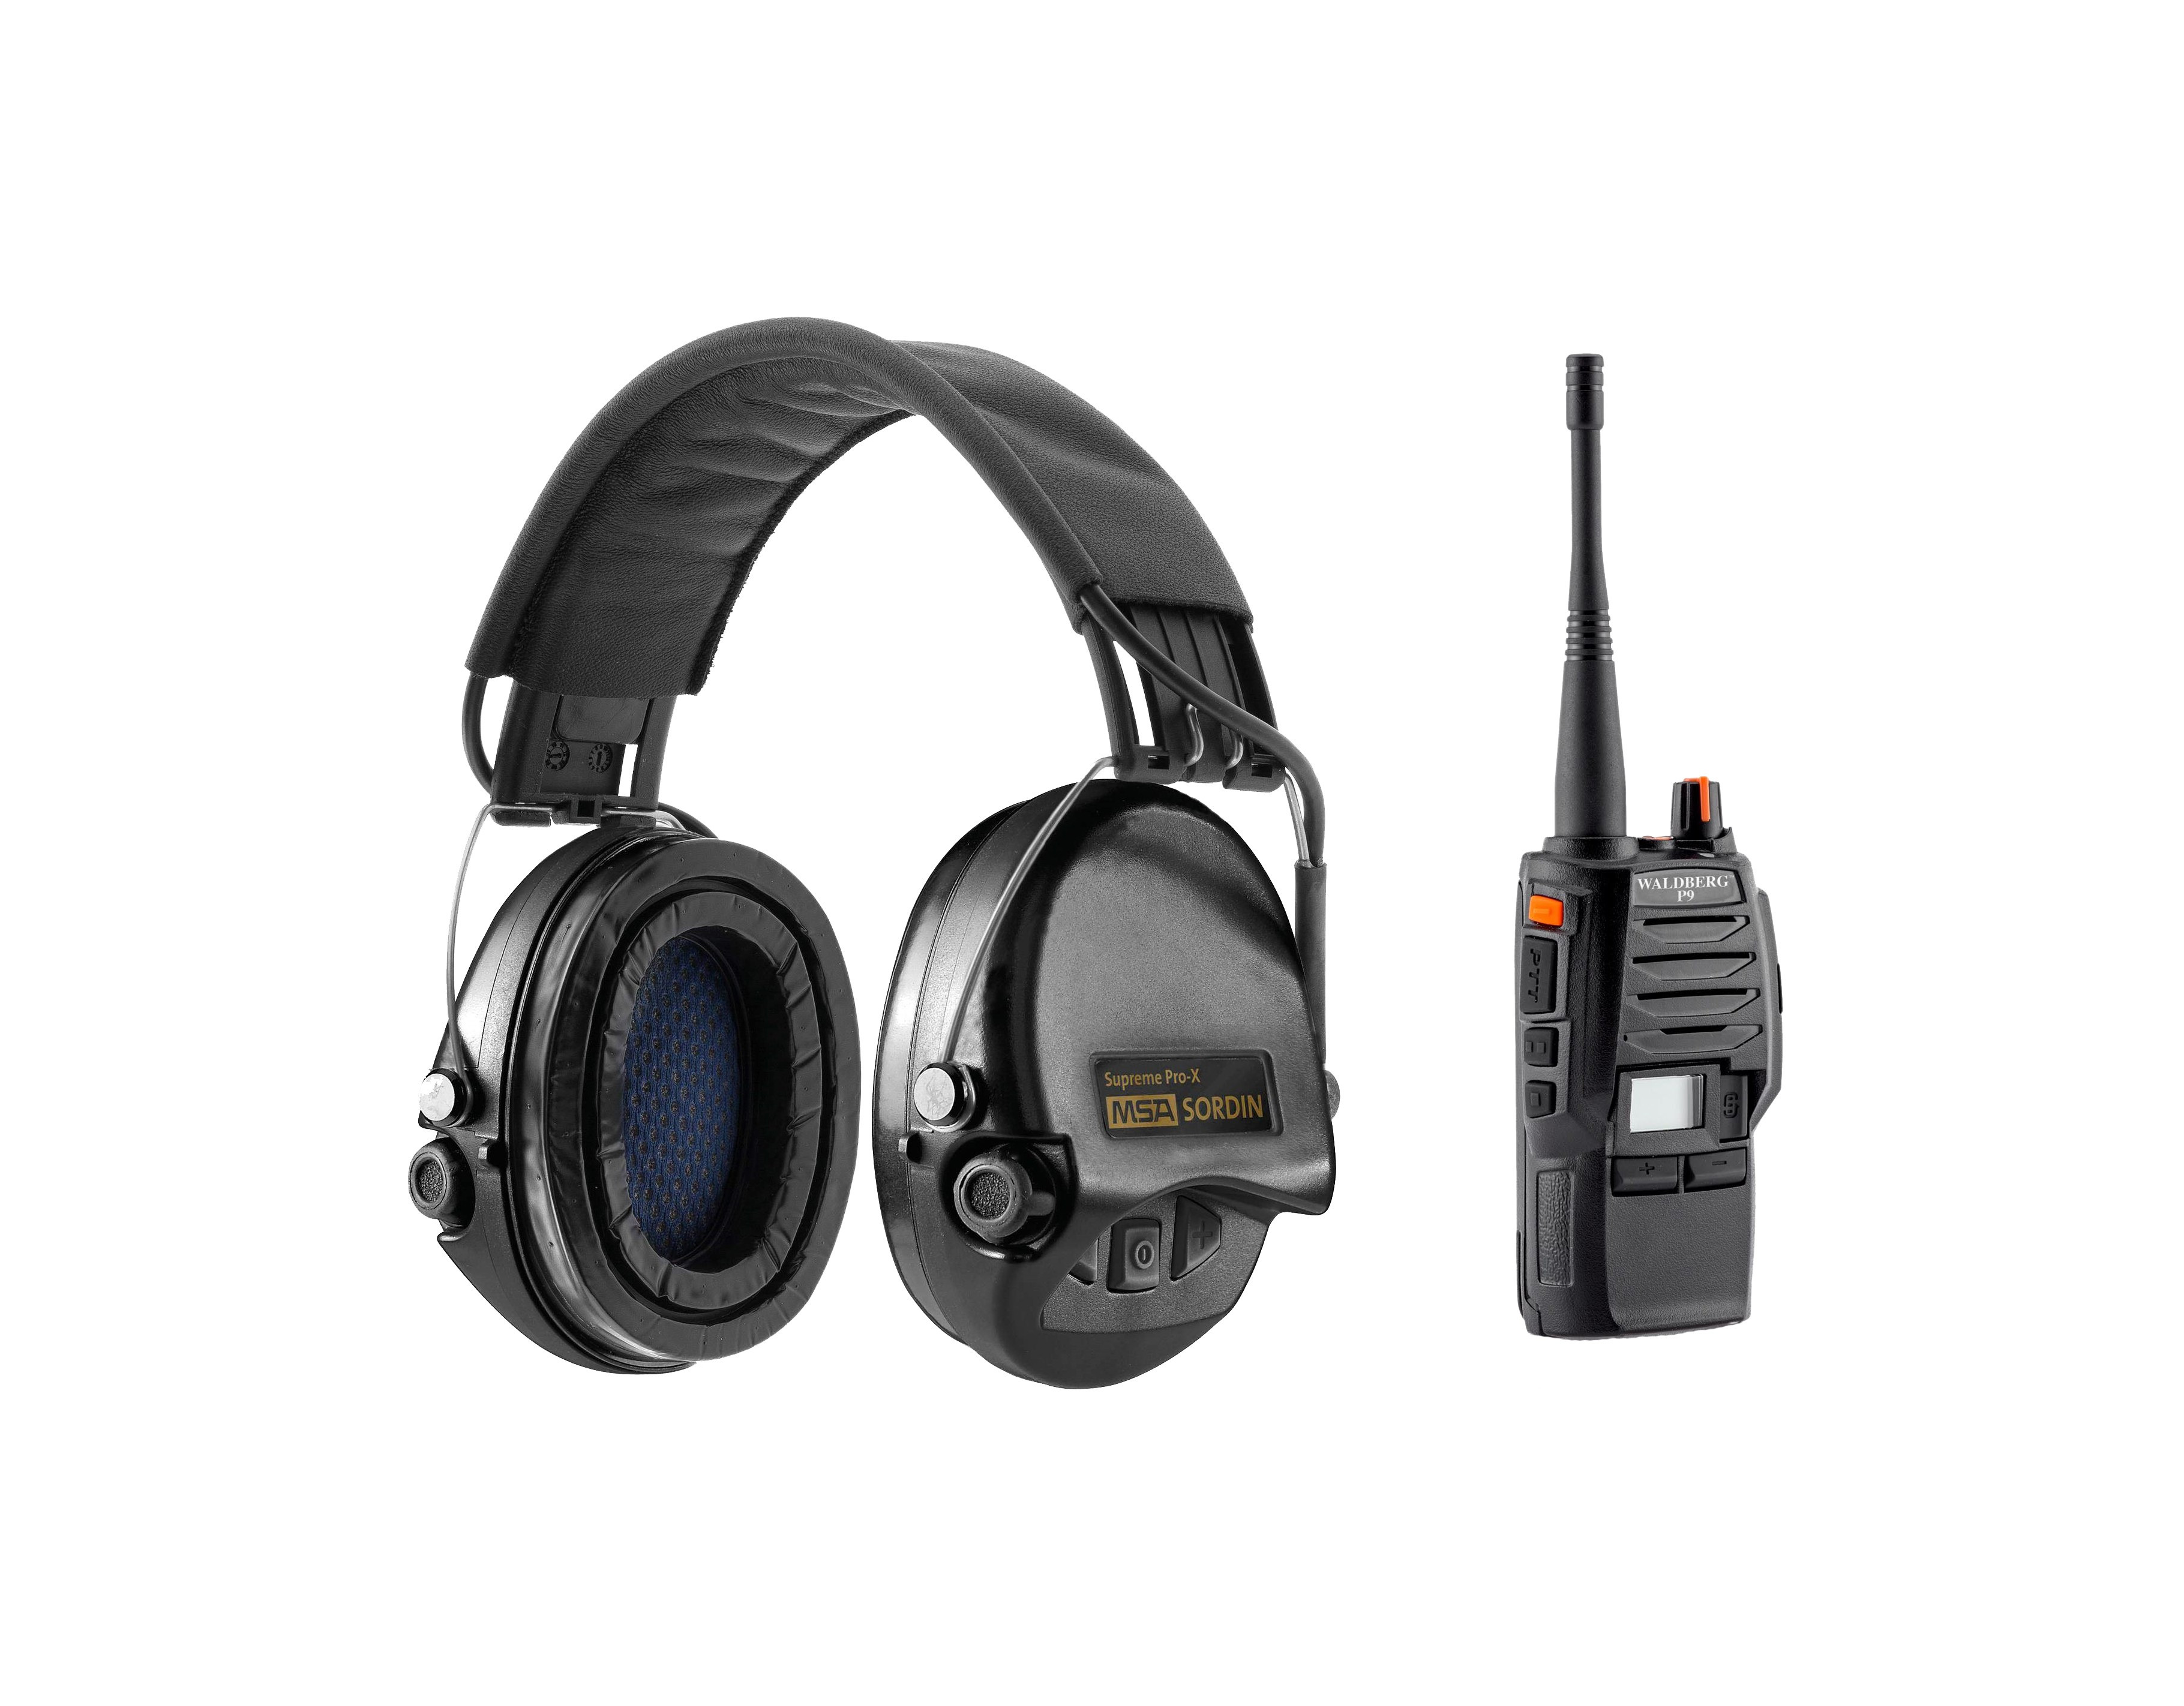 Equipement Pack Casque Supreme Pro X & Talkie Walkie MSA - 1